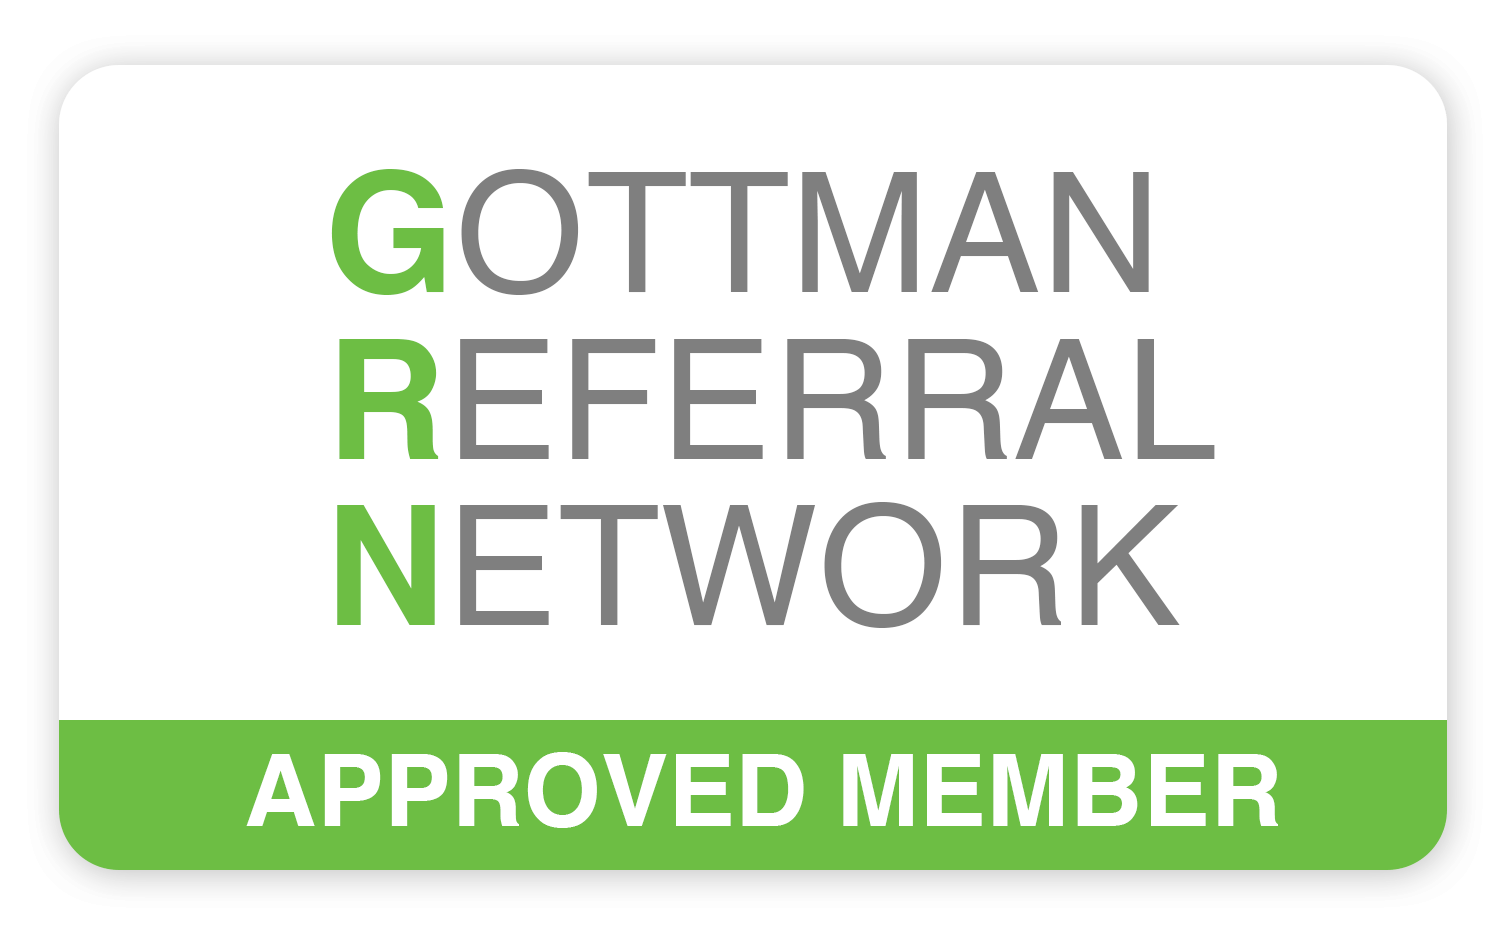 Amada Battista's profile on the Gottman Referral Network